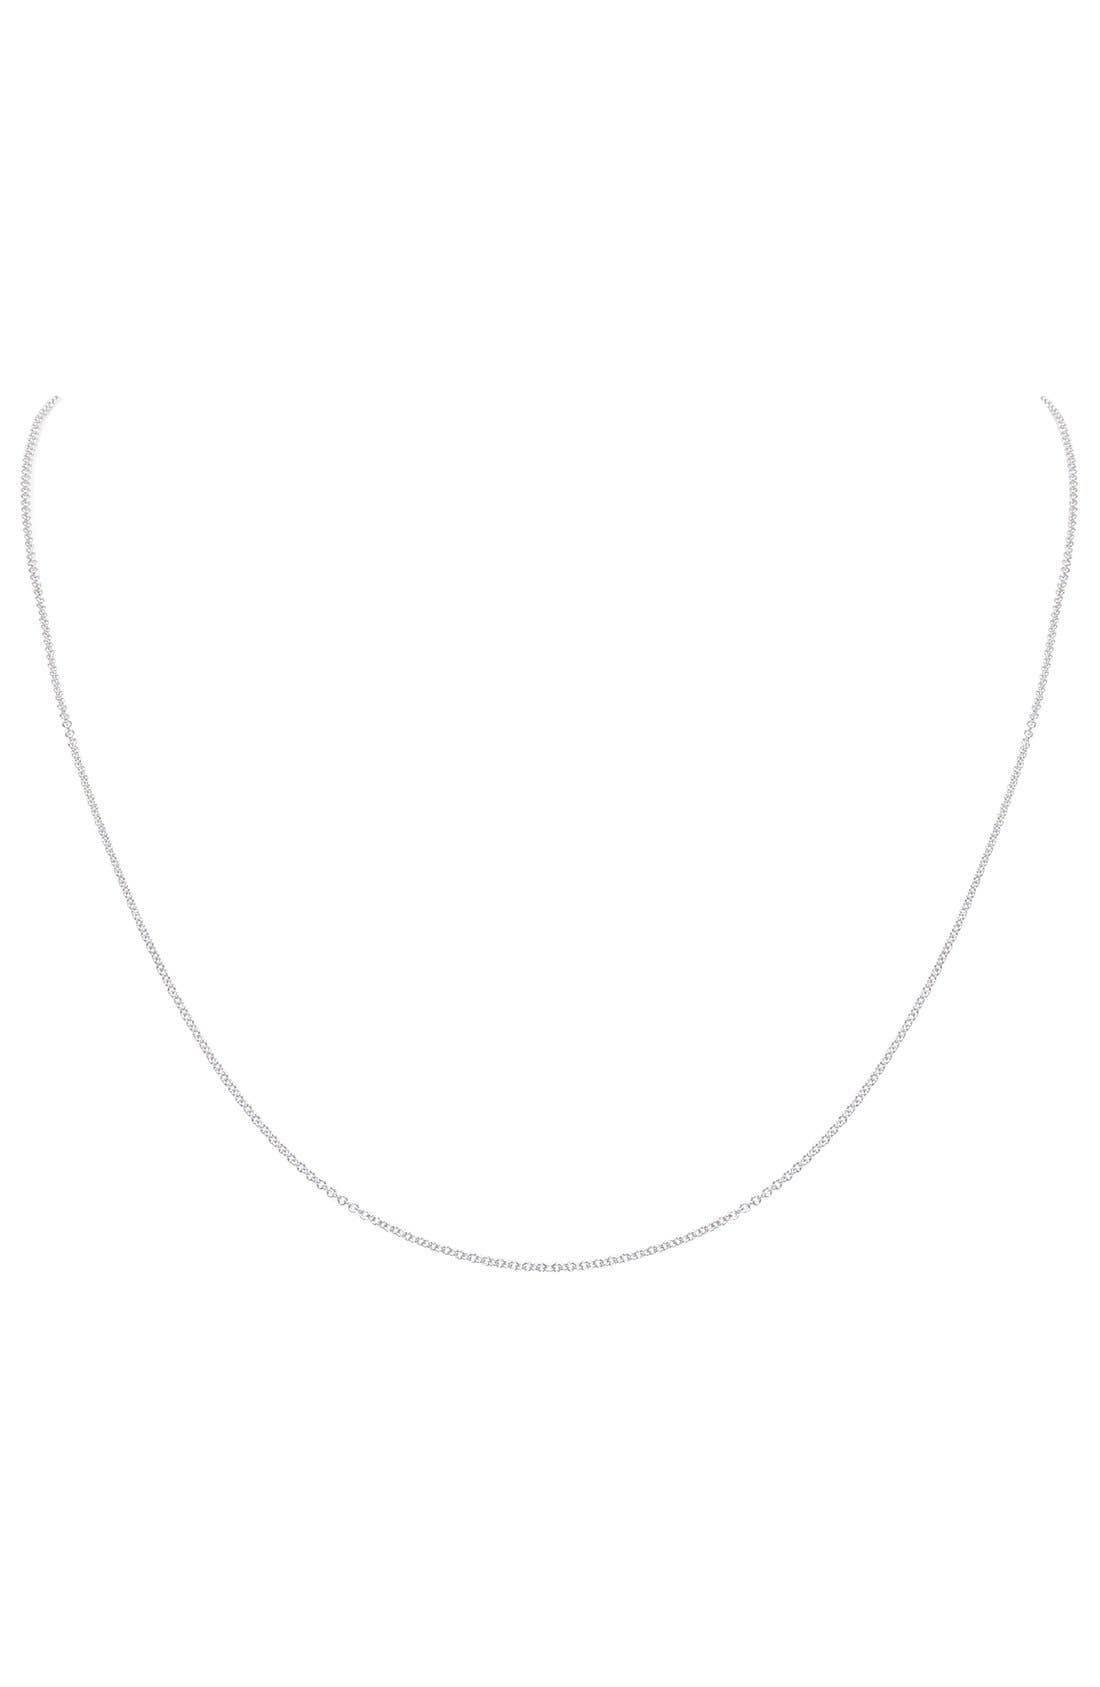 Chain Necklace,                             Main thumbnail 1, color,                             WHITE GOLD